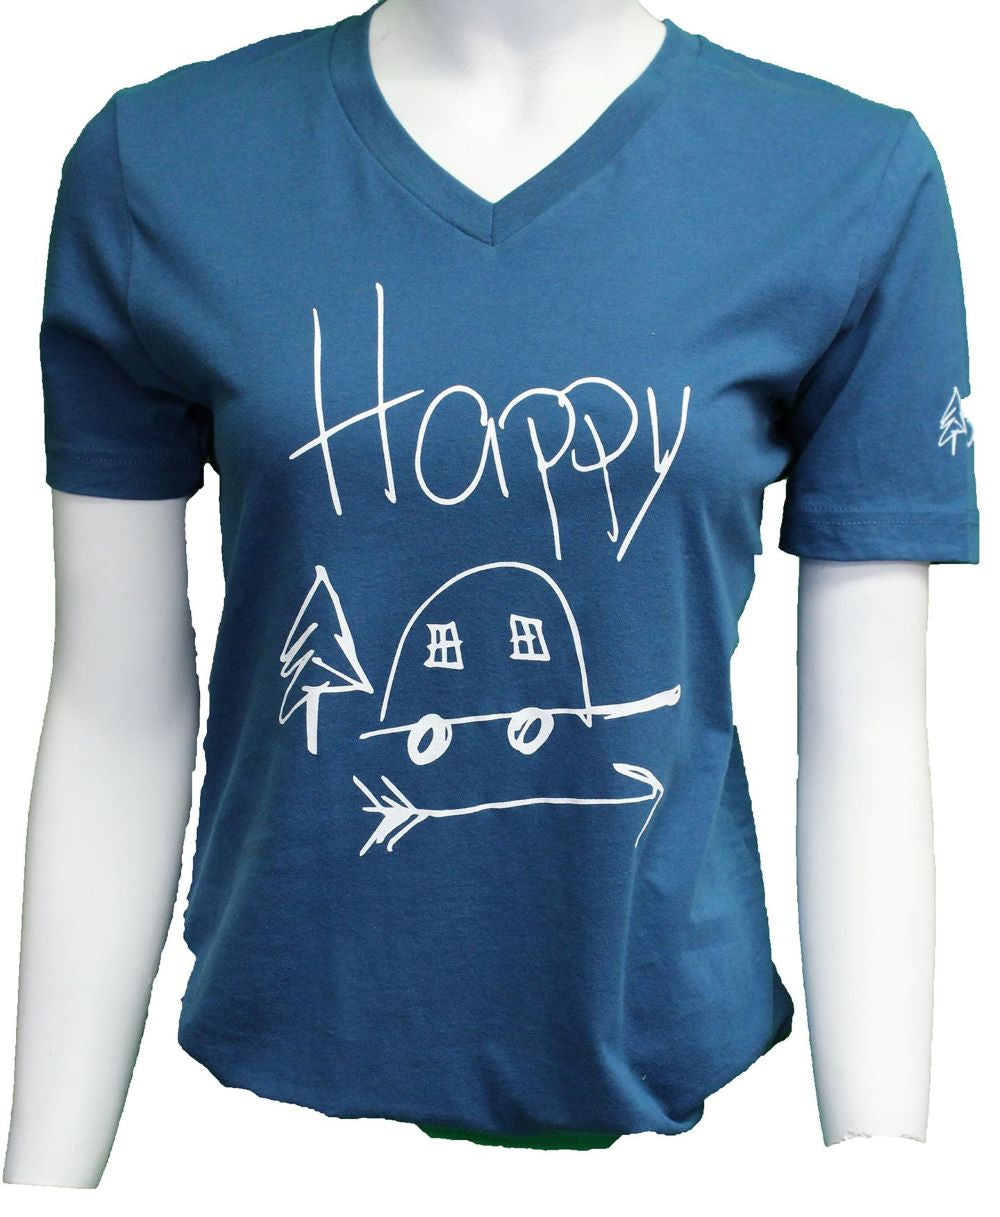 'ScratchPad Tees' Women's Happy Camp SD Tee - Deep Teal